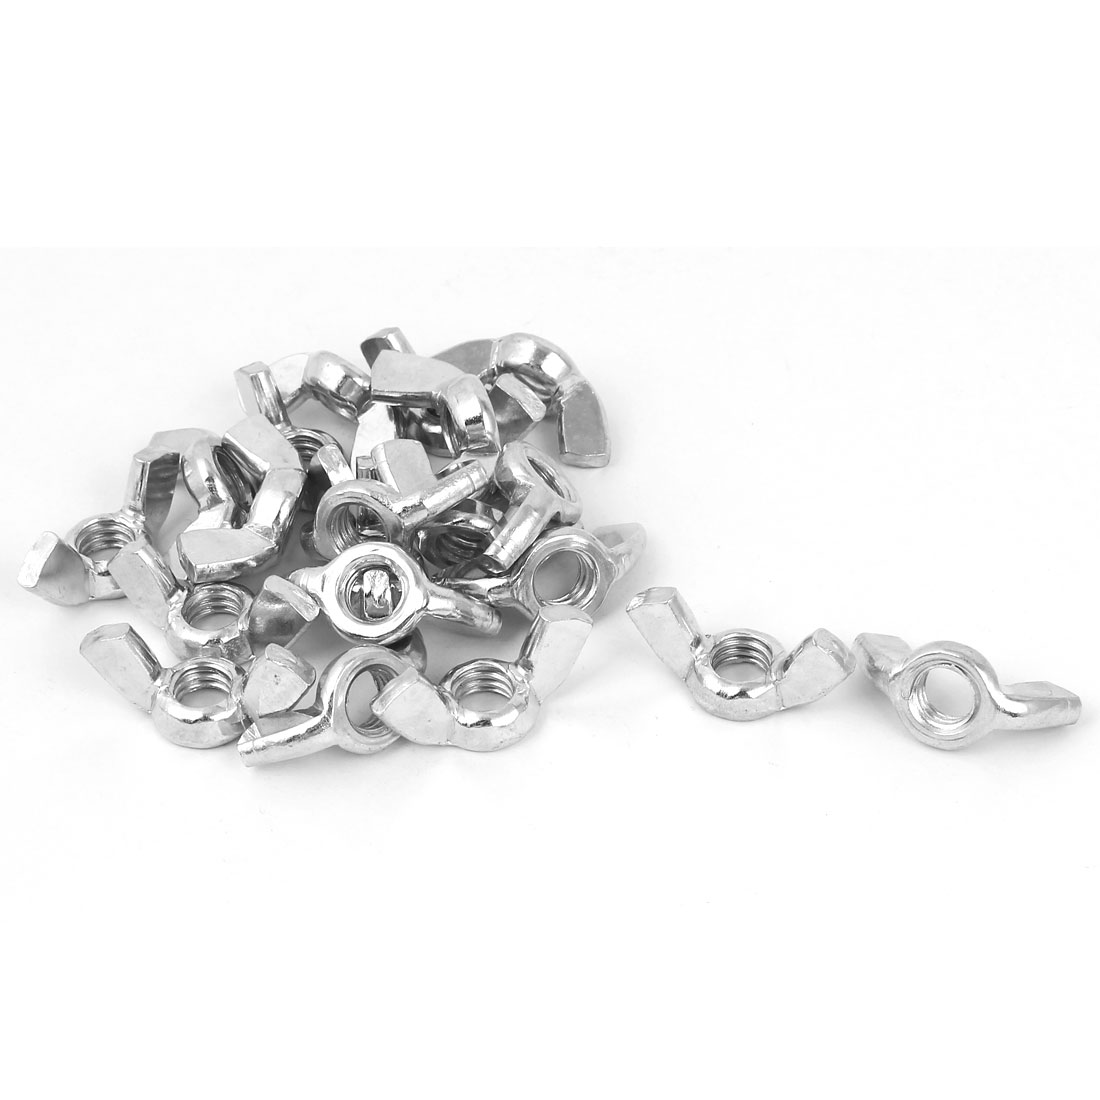 """5/16""""-18 Thread Zinc Plated Wingnut Butterfly Wing Nuts 20pcs - image 1 of 1"""